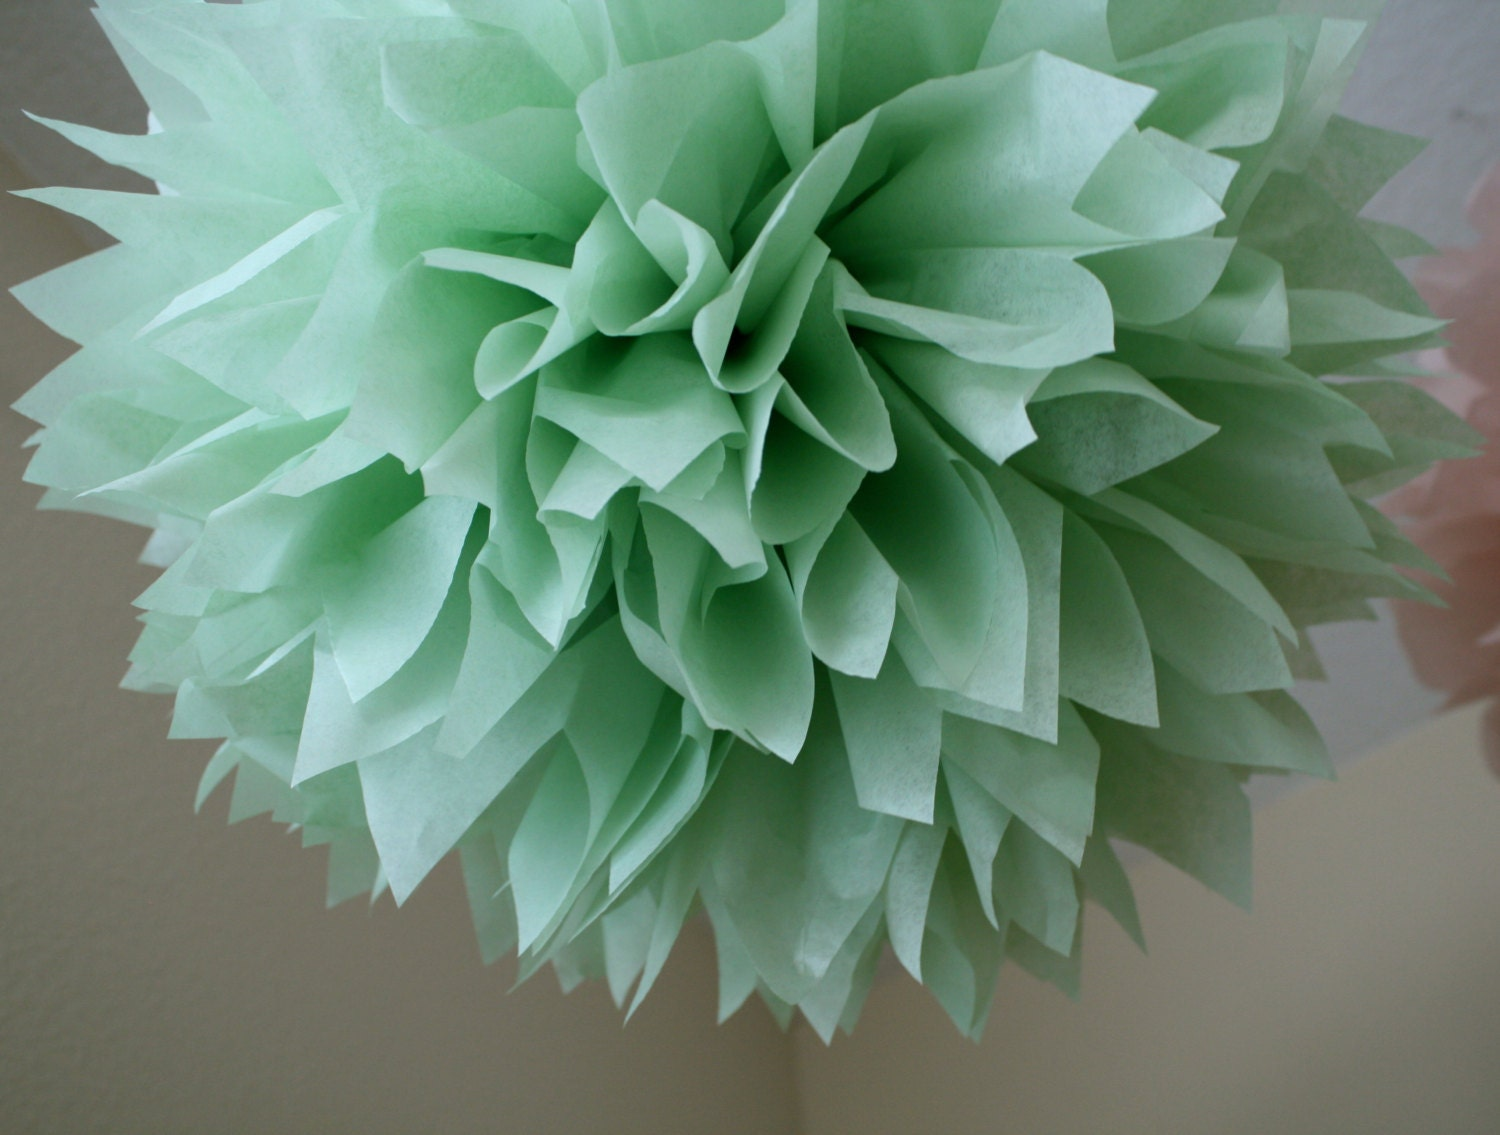 celery 1 tissue paper pom pom diy wedding decorations. Black Bedroom Furniture Sets. Home Design Ideas